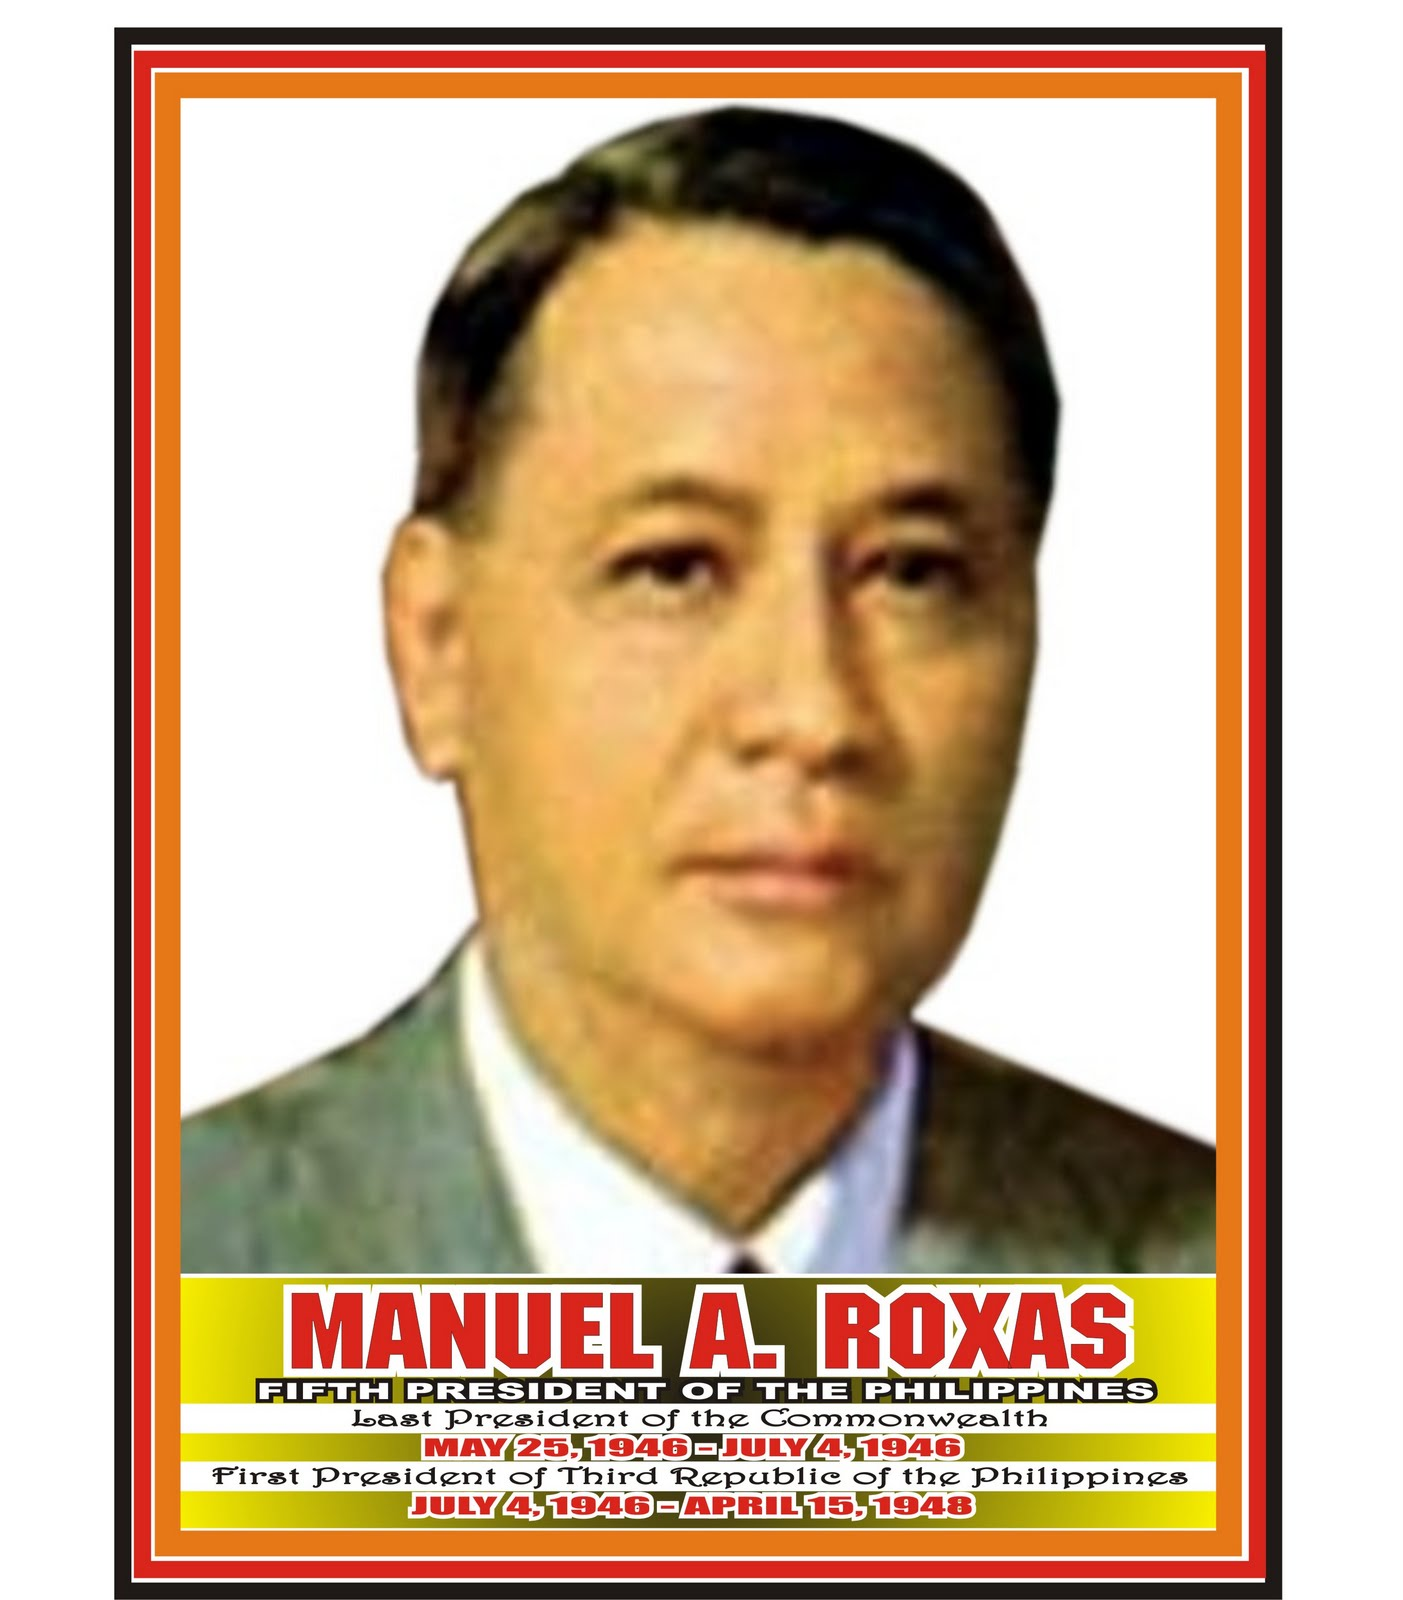 programs of manuel roxas Manuel roxas was elected in 1946 as the first president of the republic of the philippines and is credited with bringing the nation out of post-war economic and social destitution roxas established himself as a prominent political leader, instituting several key political and economic policies while in office.